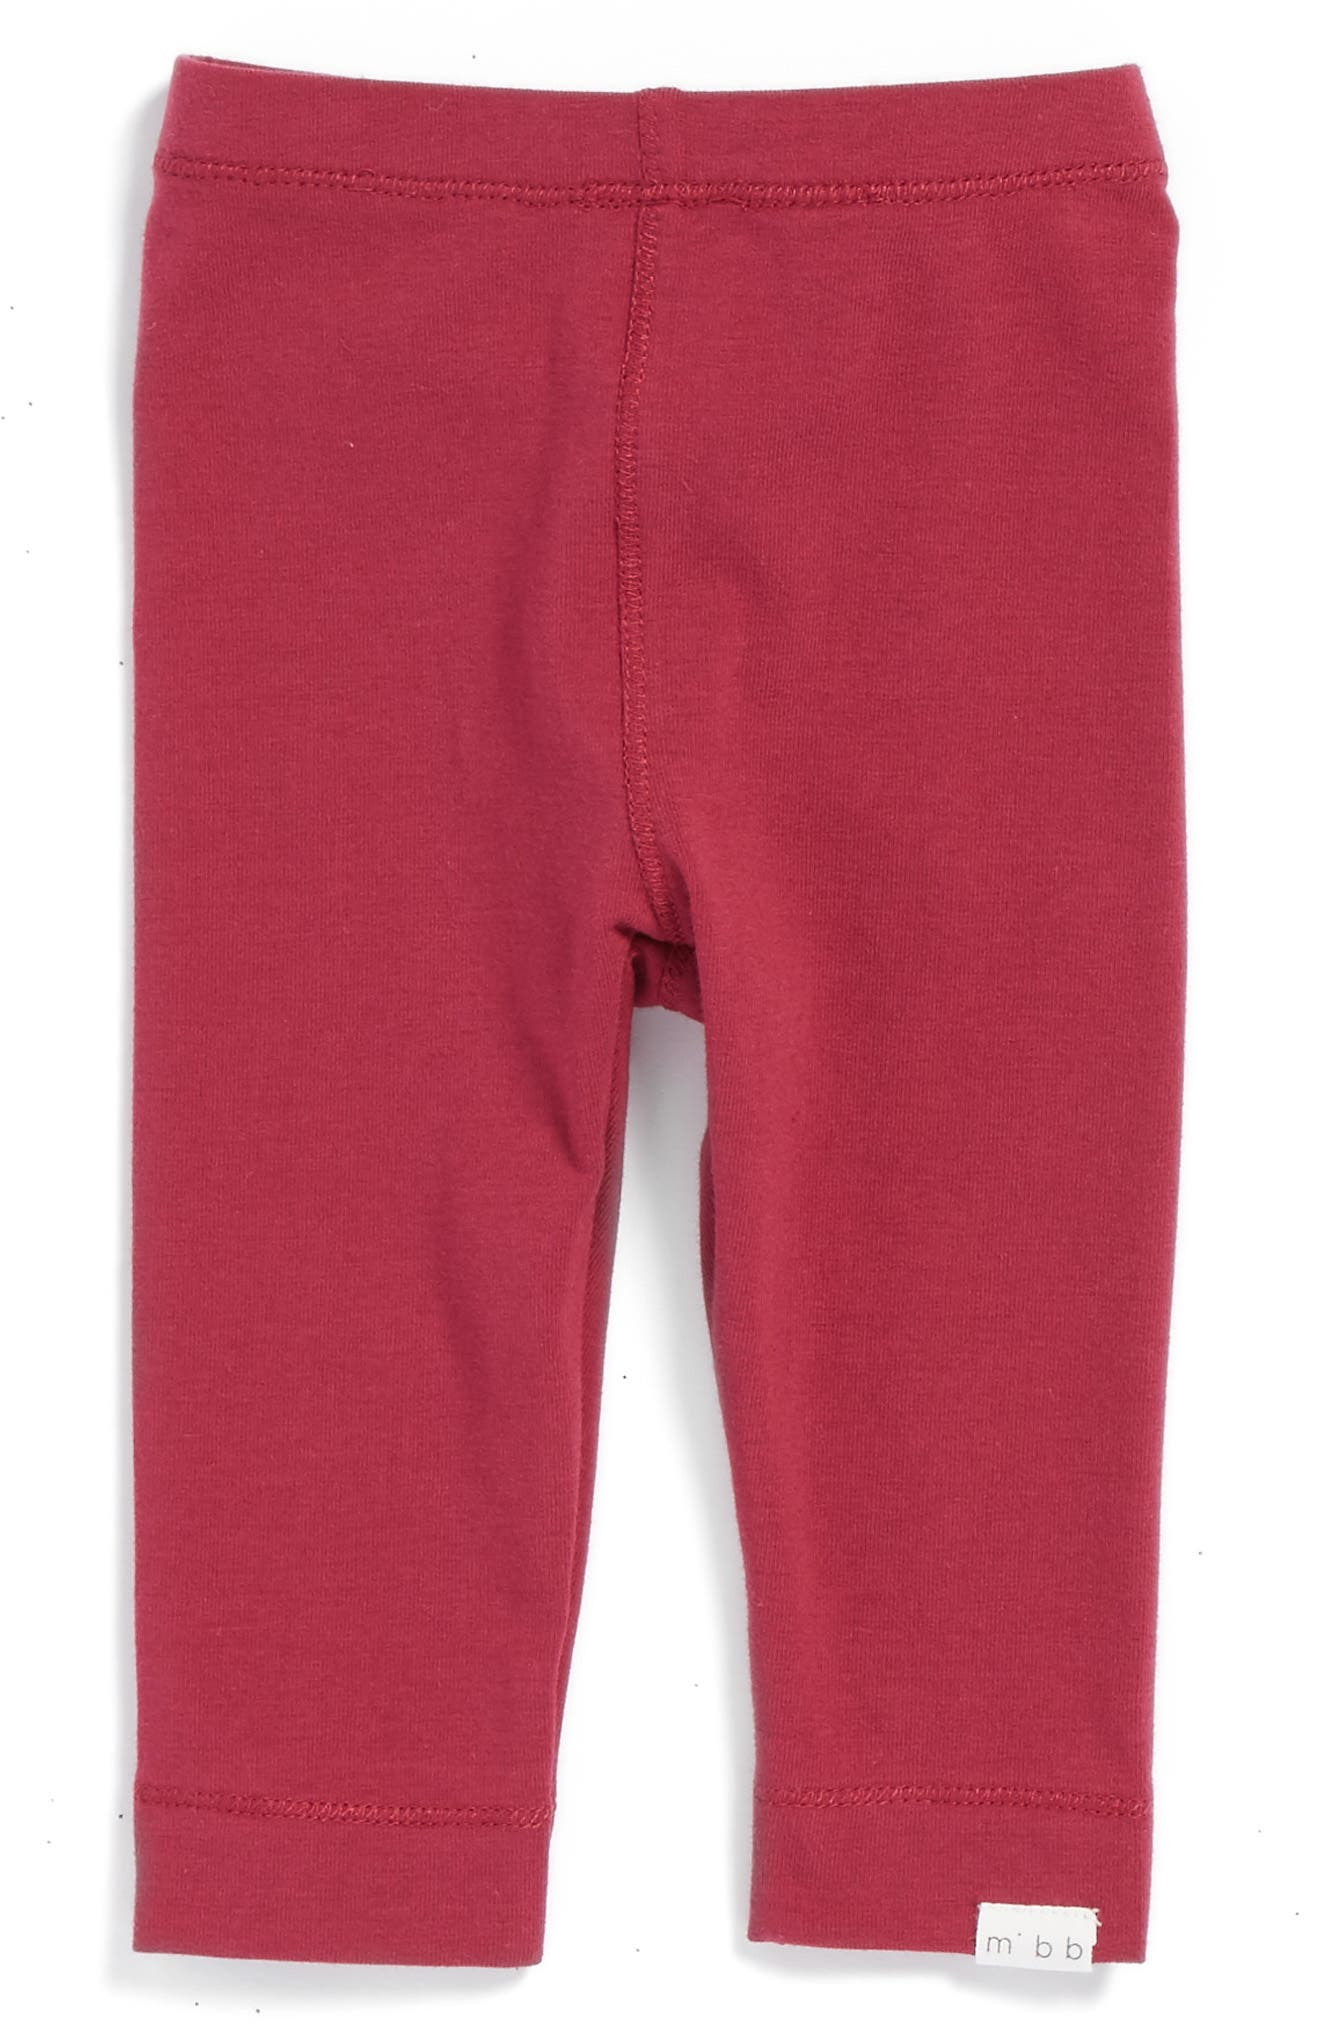 Miles Baby Knit Leggings (Baby Girls)